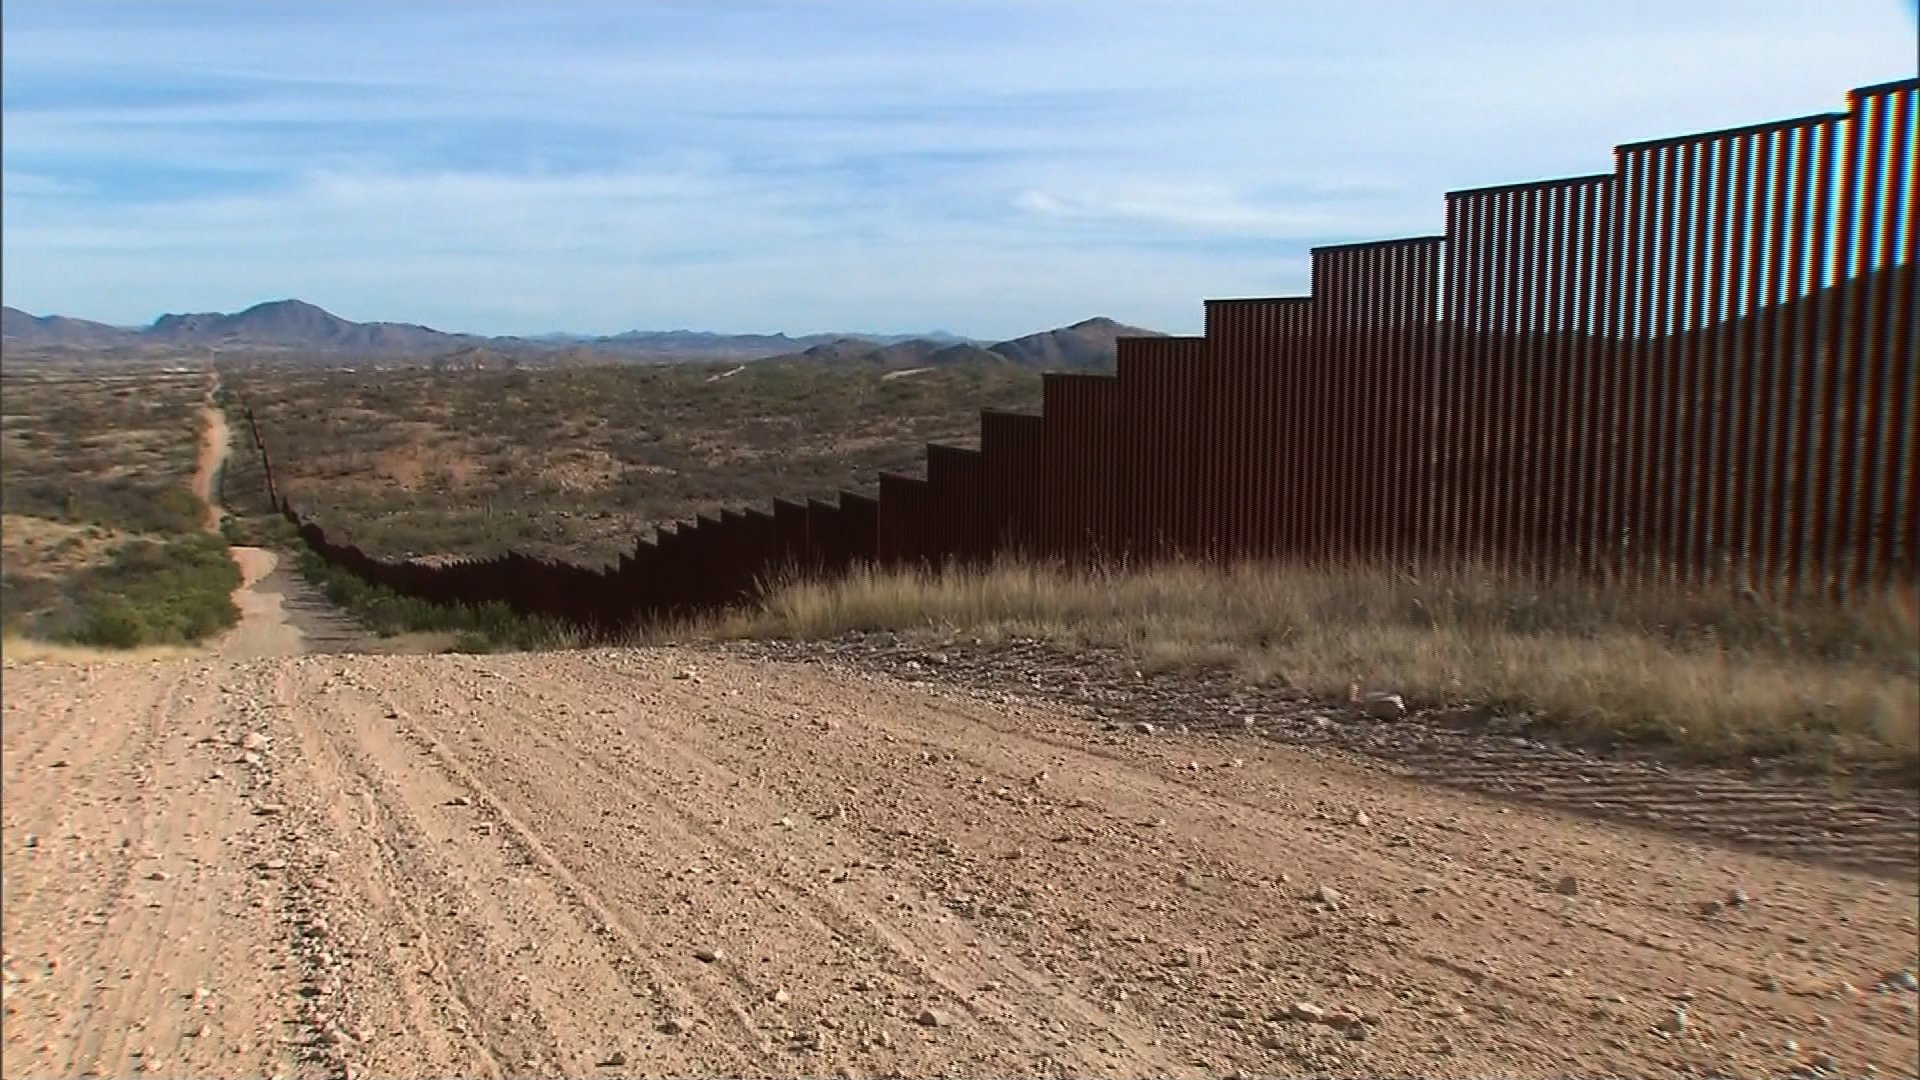 The wall along the southern border of the United States where it meets Mexico. (Credit: CNN)